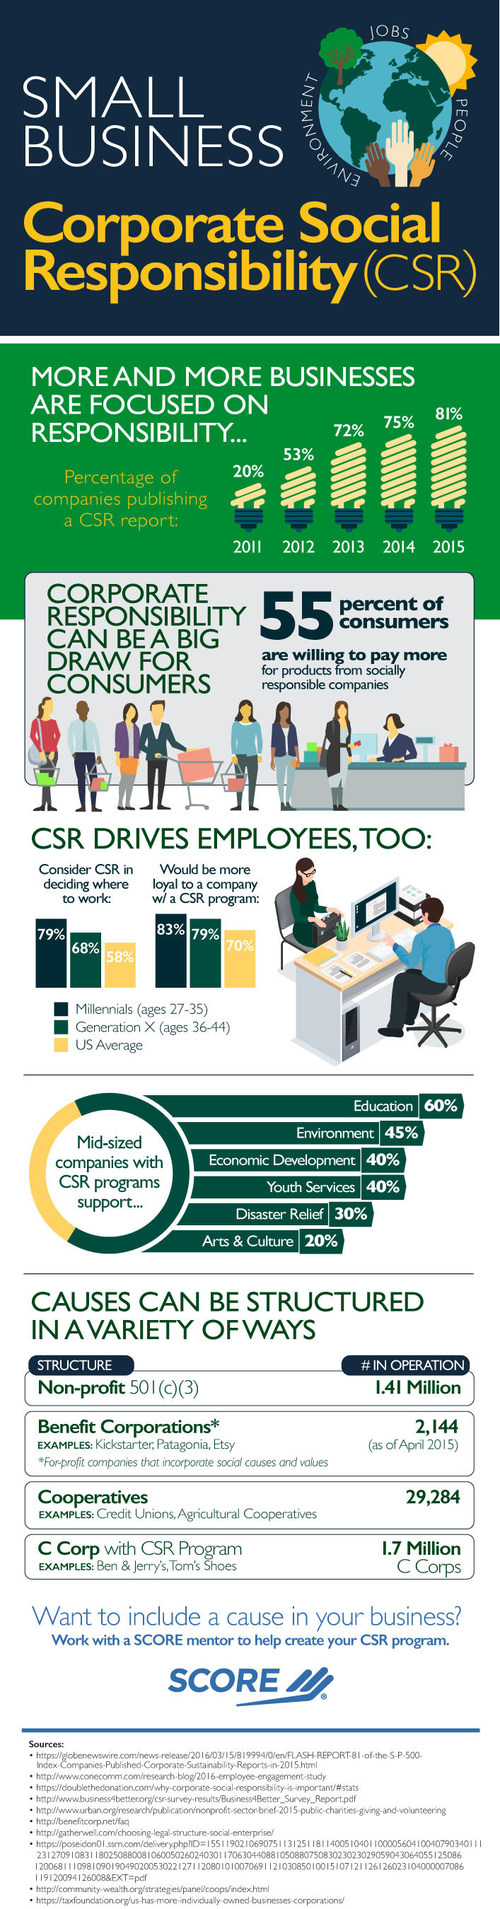 SCORE, the nation's largest network of volunteer, expert business mentors, has published an infographic highlighting the growing impact of corporate social responsibility (CSR) on consumer behavior and employee decision making.